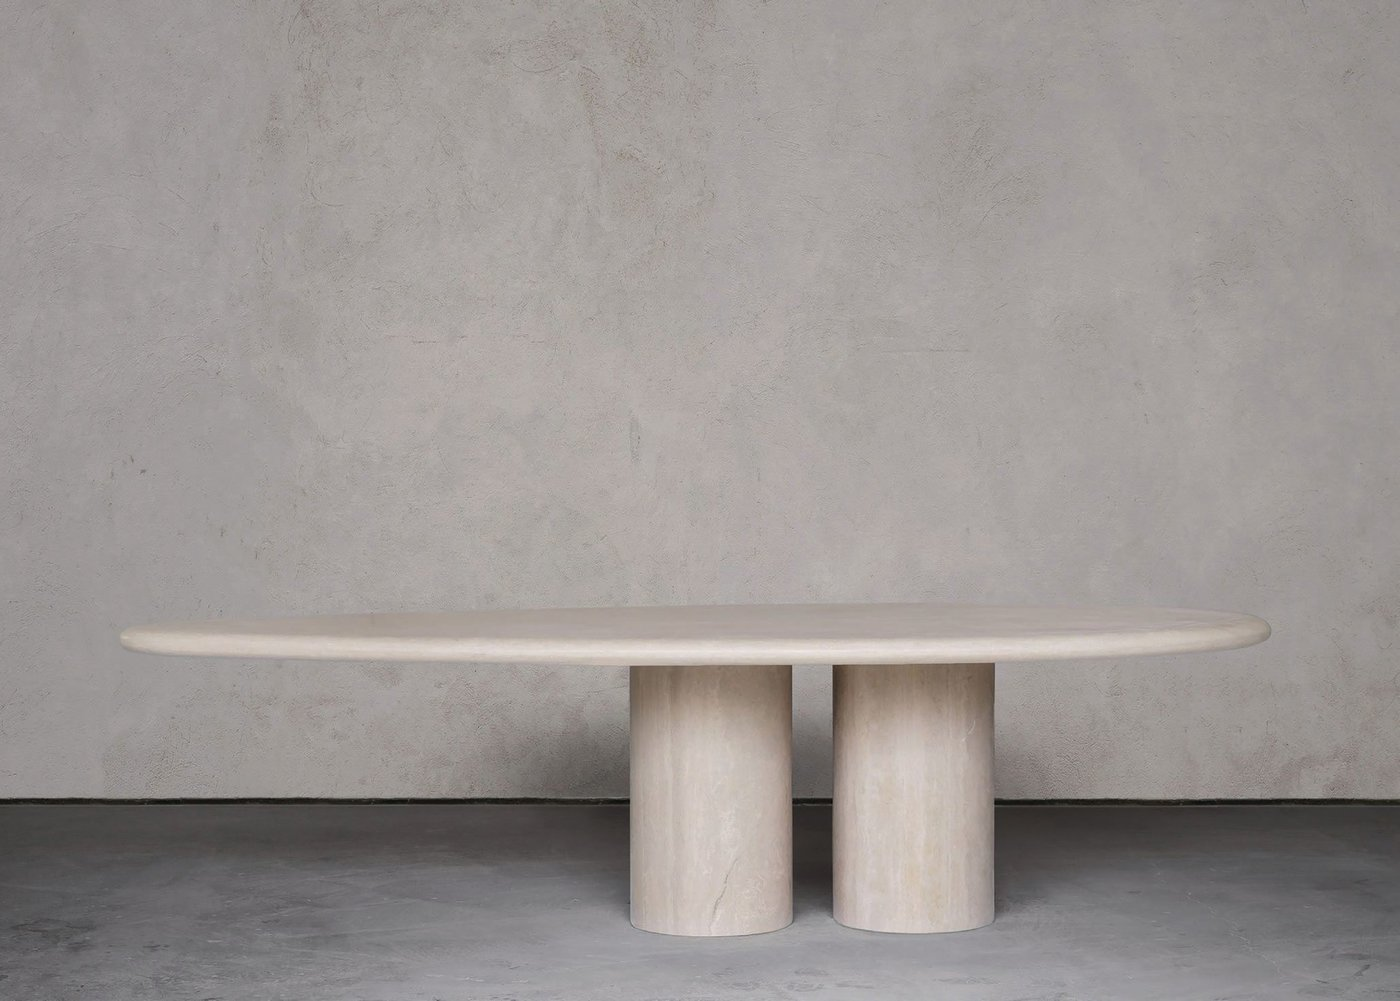 Ippico 05 table, designed by Martin Massé, limited edition of 12, $42,875 PHOTO COURTESY OF STUDIOTWENTYSEVEN